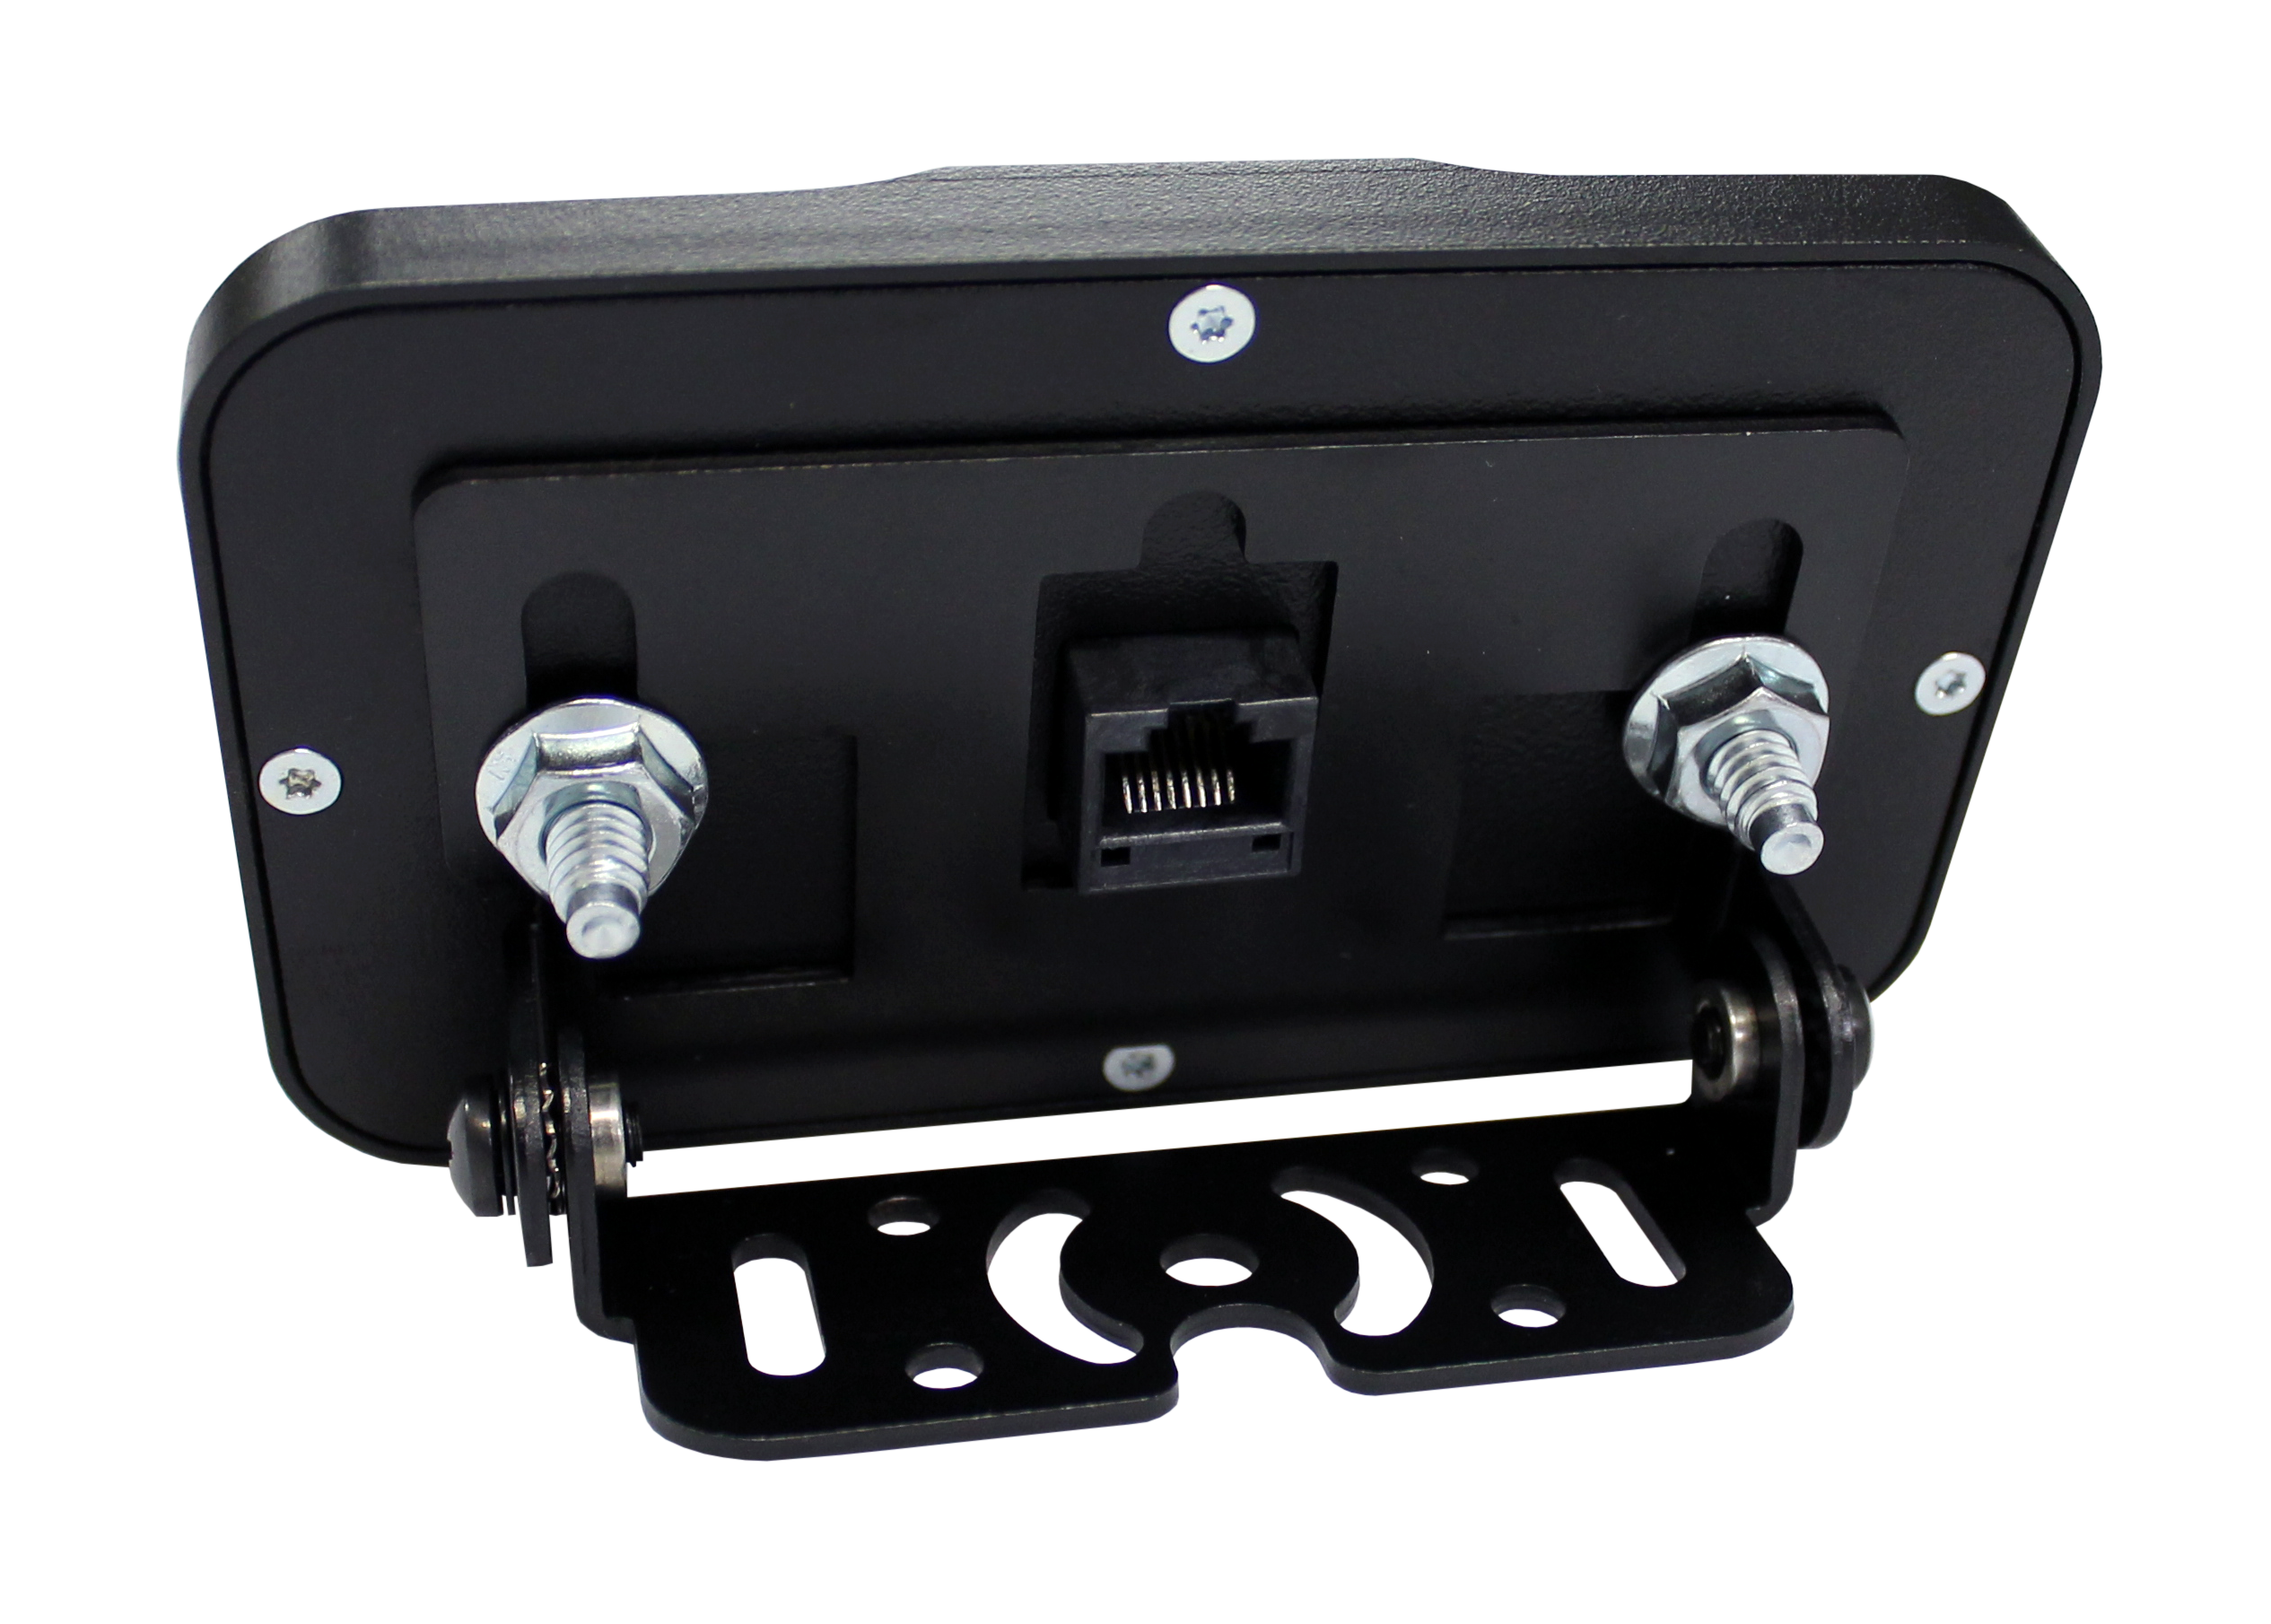 8 Circuit Se System W Hd Panel For Toyota Tacoma 4x4 Spod 2004 Fuse Box View The Full Image